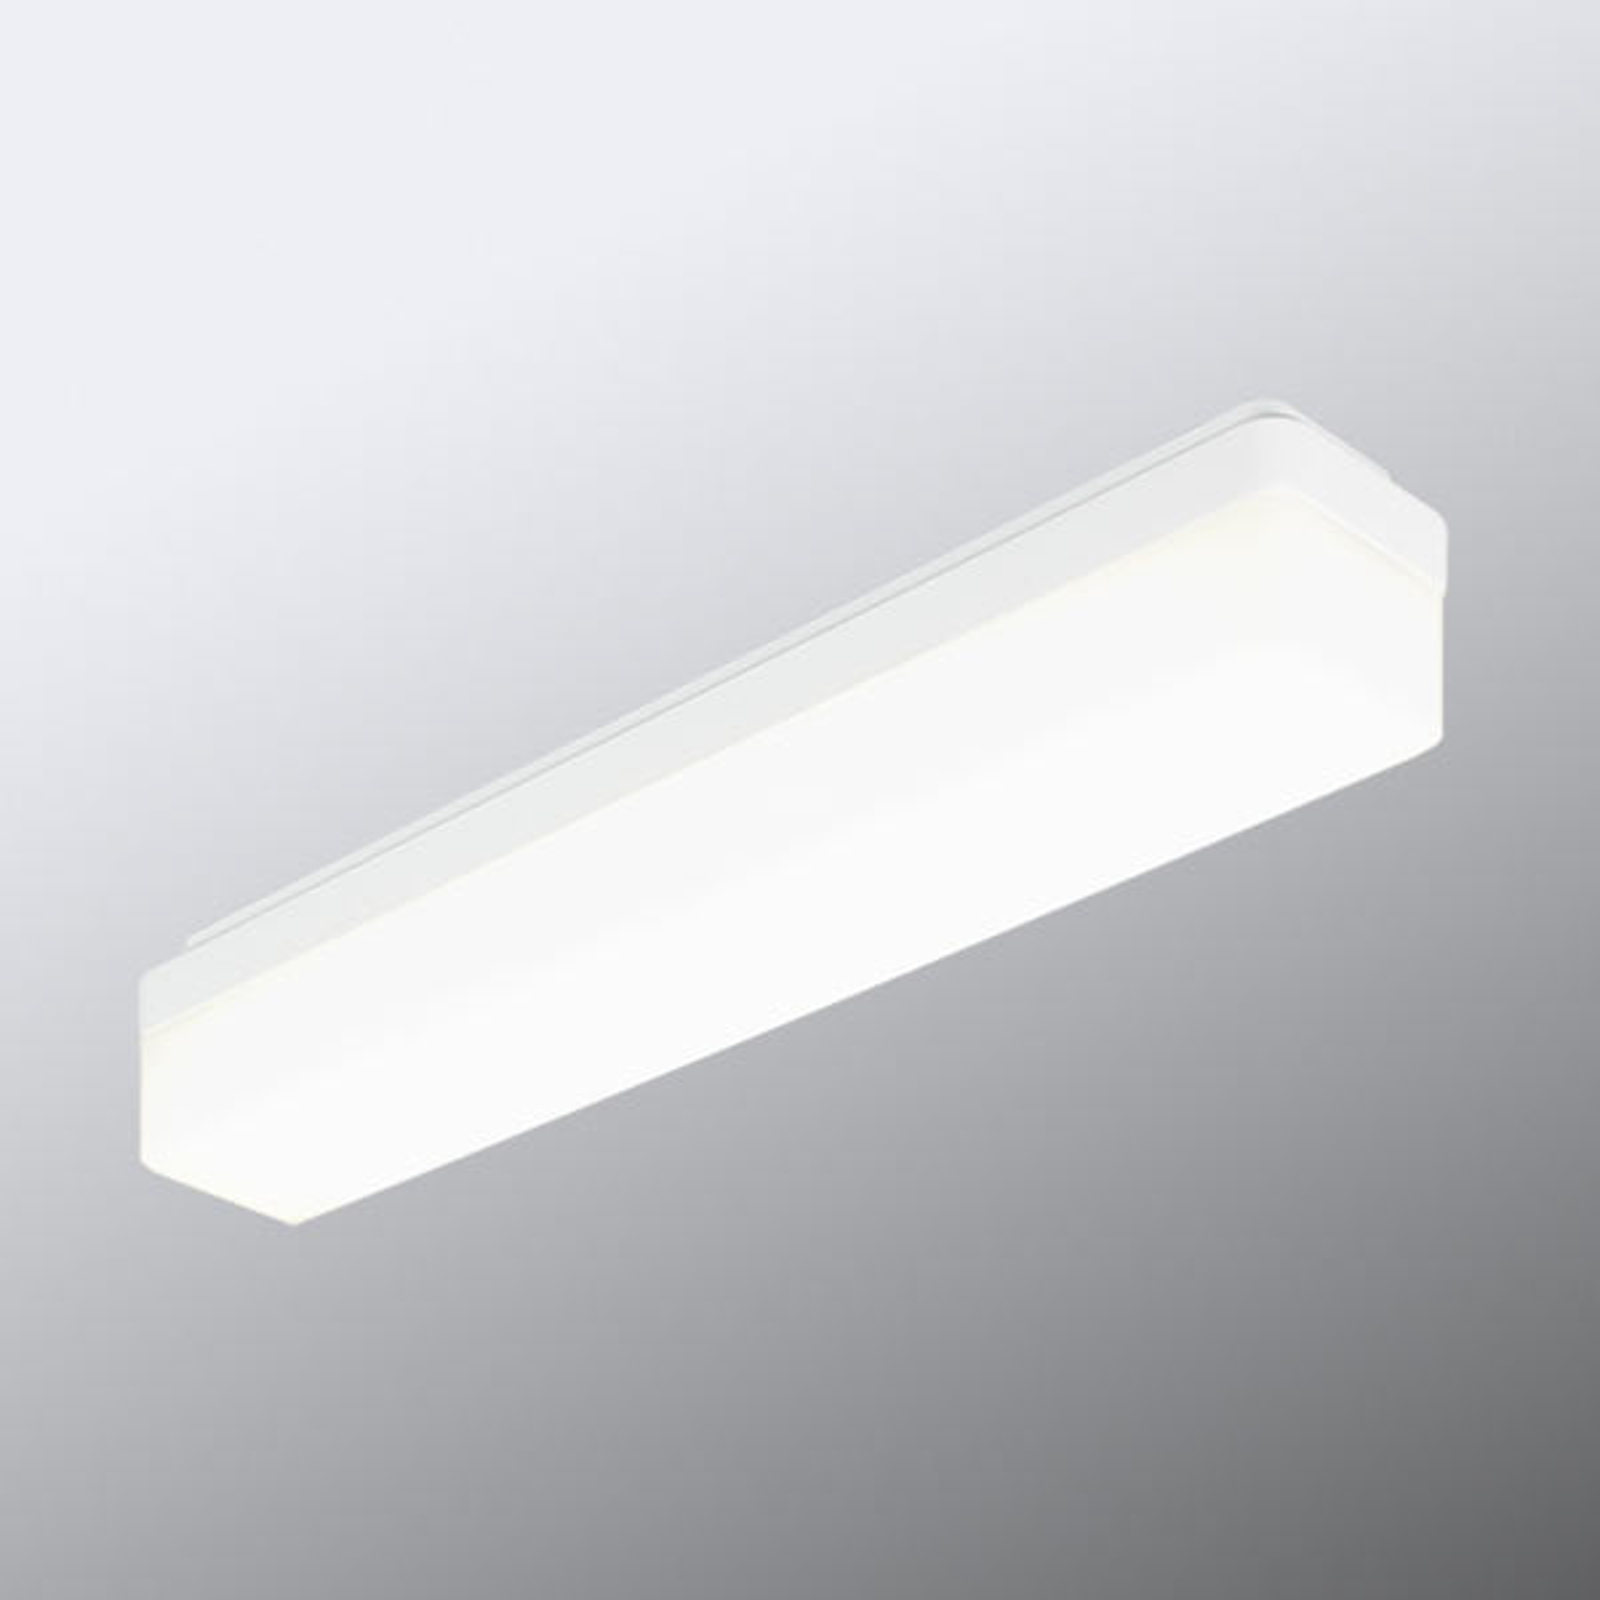 LED-Wandleuchte A70-W365 LED 1000 HF 14W 3.000K